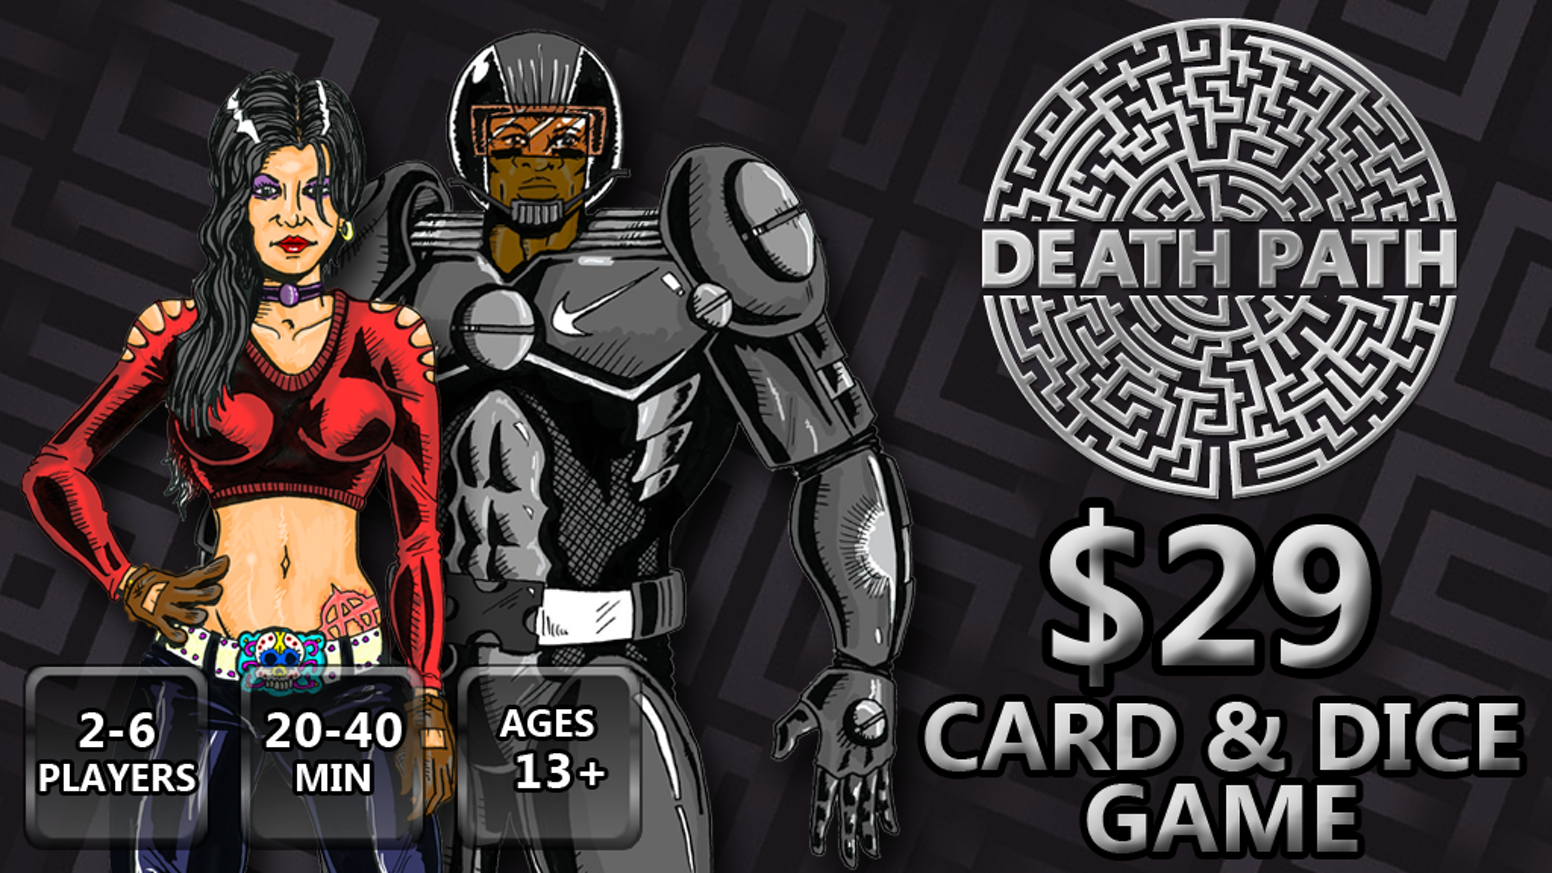 Death Path is multi-player card & dice game set in the near future in which Subjects are forced to navigate through a fearsome maze.